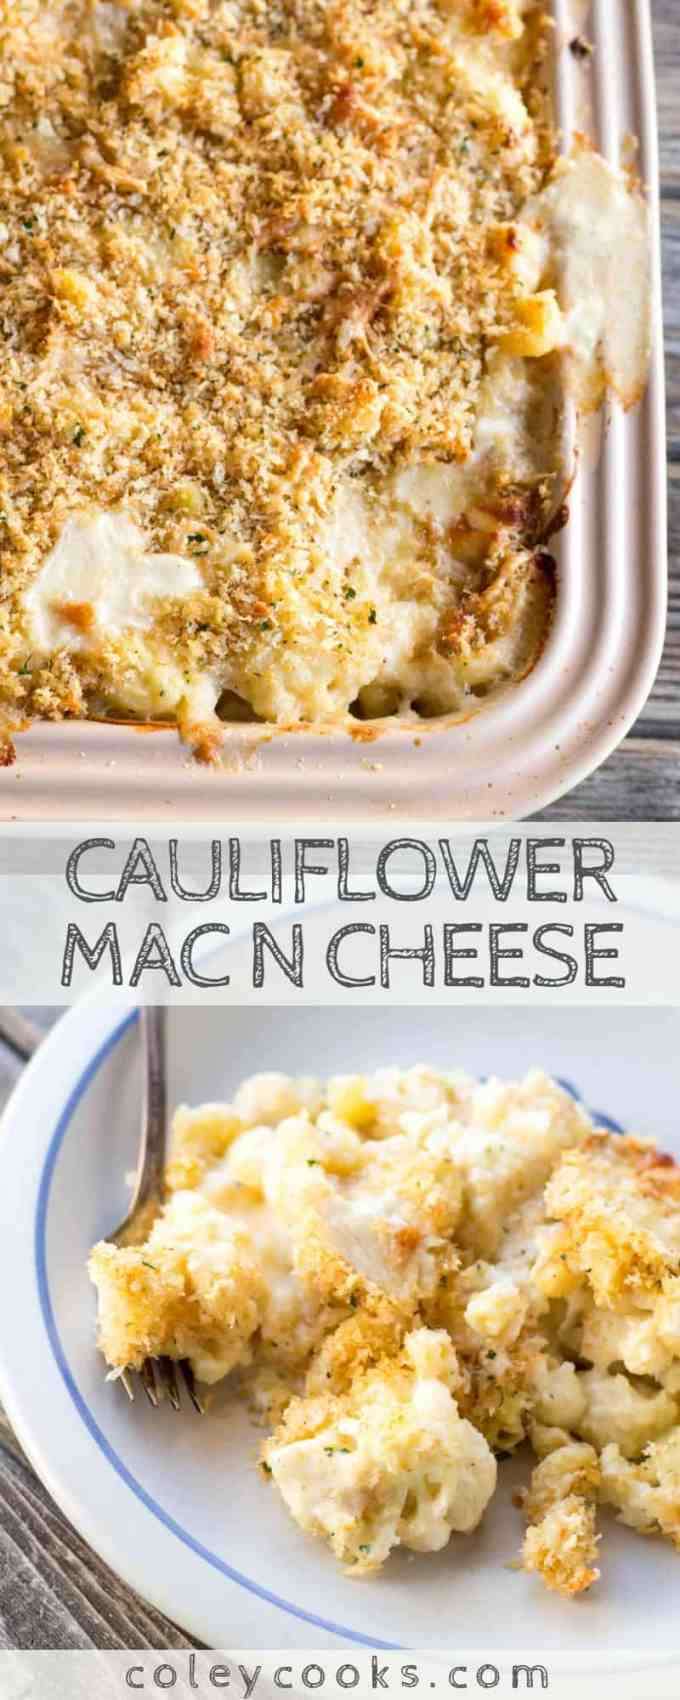 CAULIFLOWER MAC N CHEESE   Cauliflower replaces half of the pasta in this crazy good macaroni and cheese recipe. Great recipe for serving a crowd! #macaroni #cheese #cauliflower #Christmas #dinner #entertaining #party #recipe #easy   ColeyCooks.com